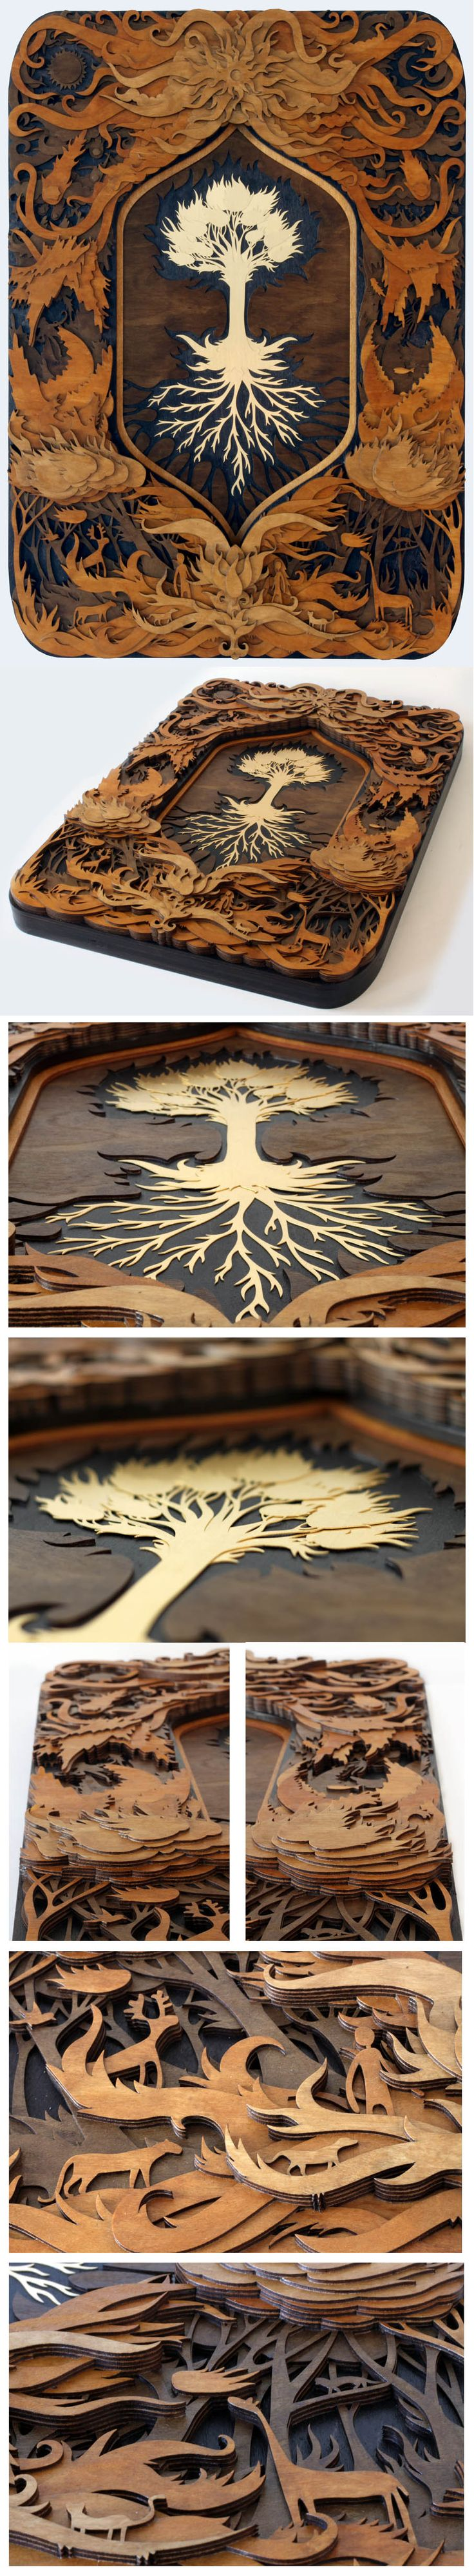 Laser works by Martin Tomsky .... this might work as a carving/pyro project ... burn on the frame and carve a tree relief ....